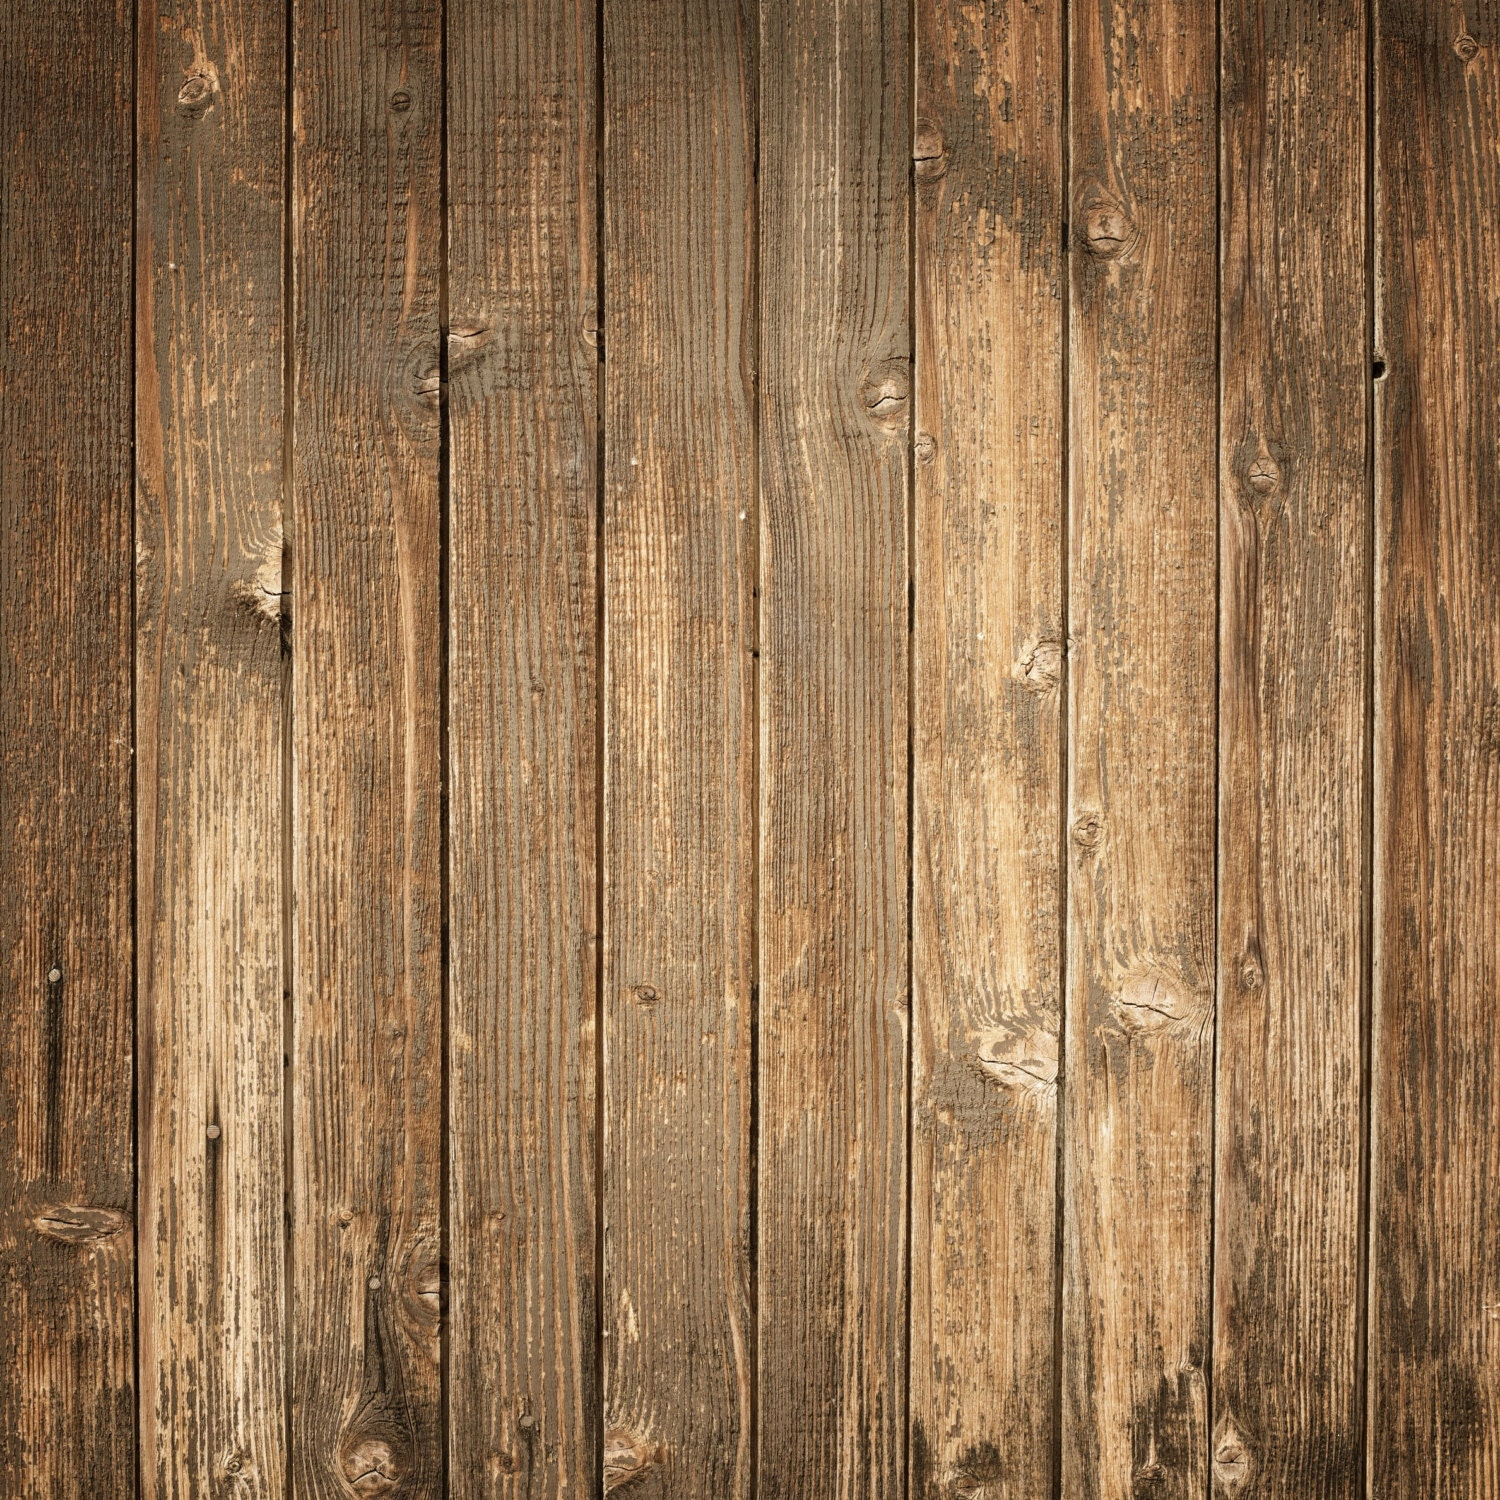 Grunge Wood Floor Vinyl Photography Backdrop